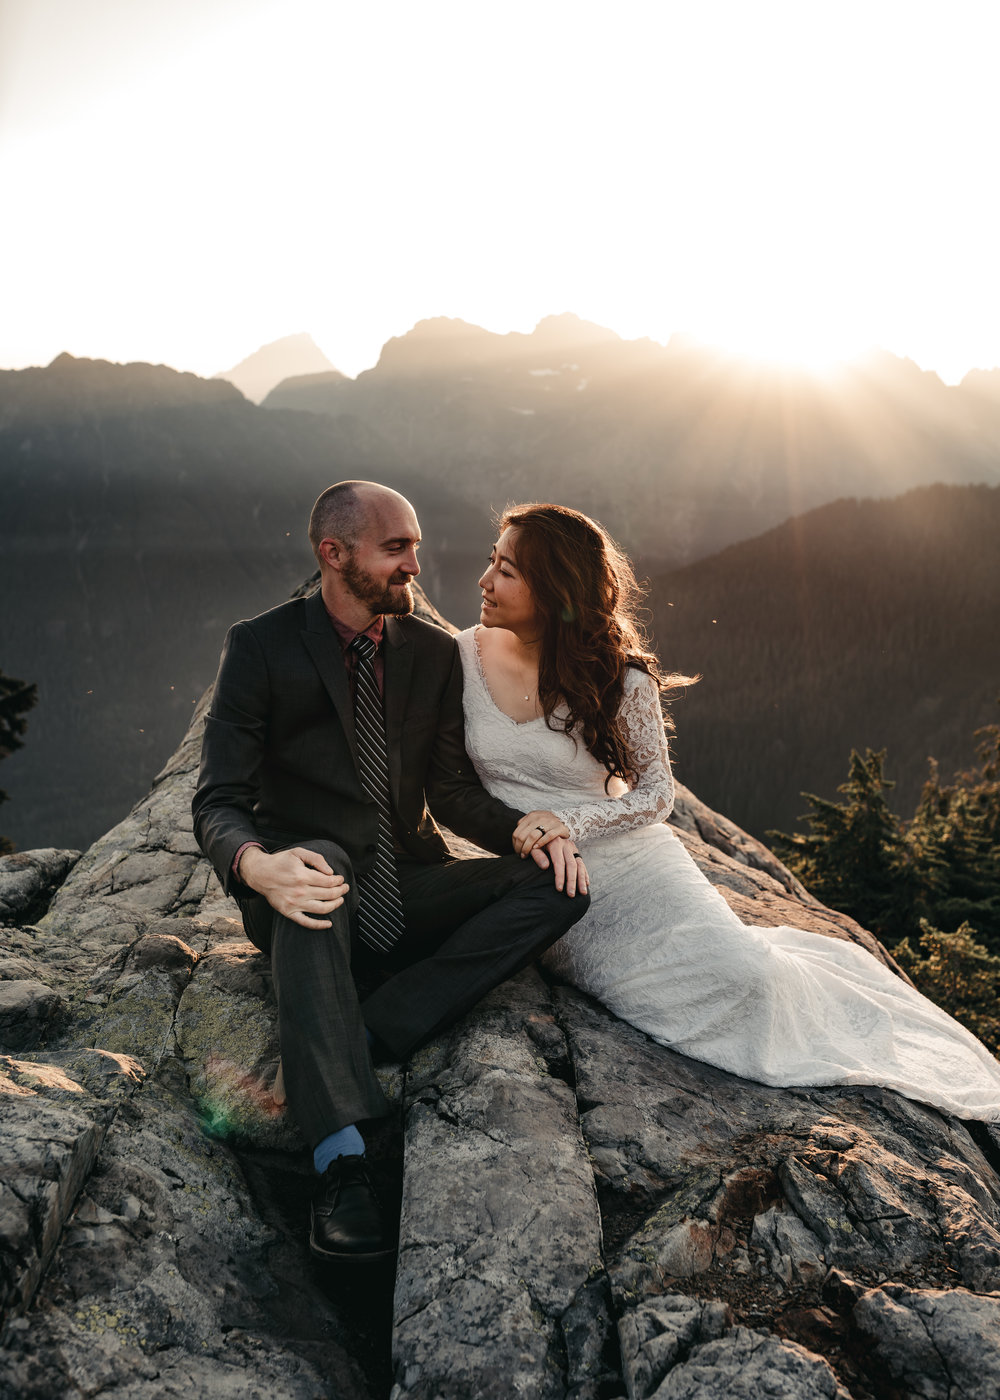 OVERNIGHT HIKING ELOPEMENT | MARIE VANDERPOOL PHOTOGRAPHY